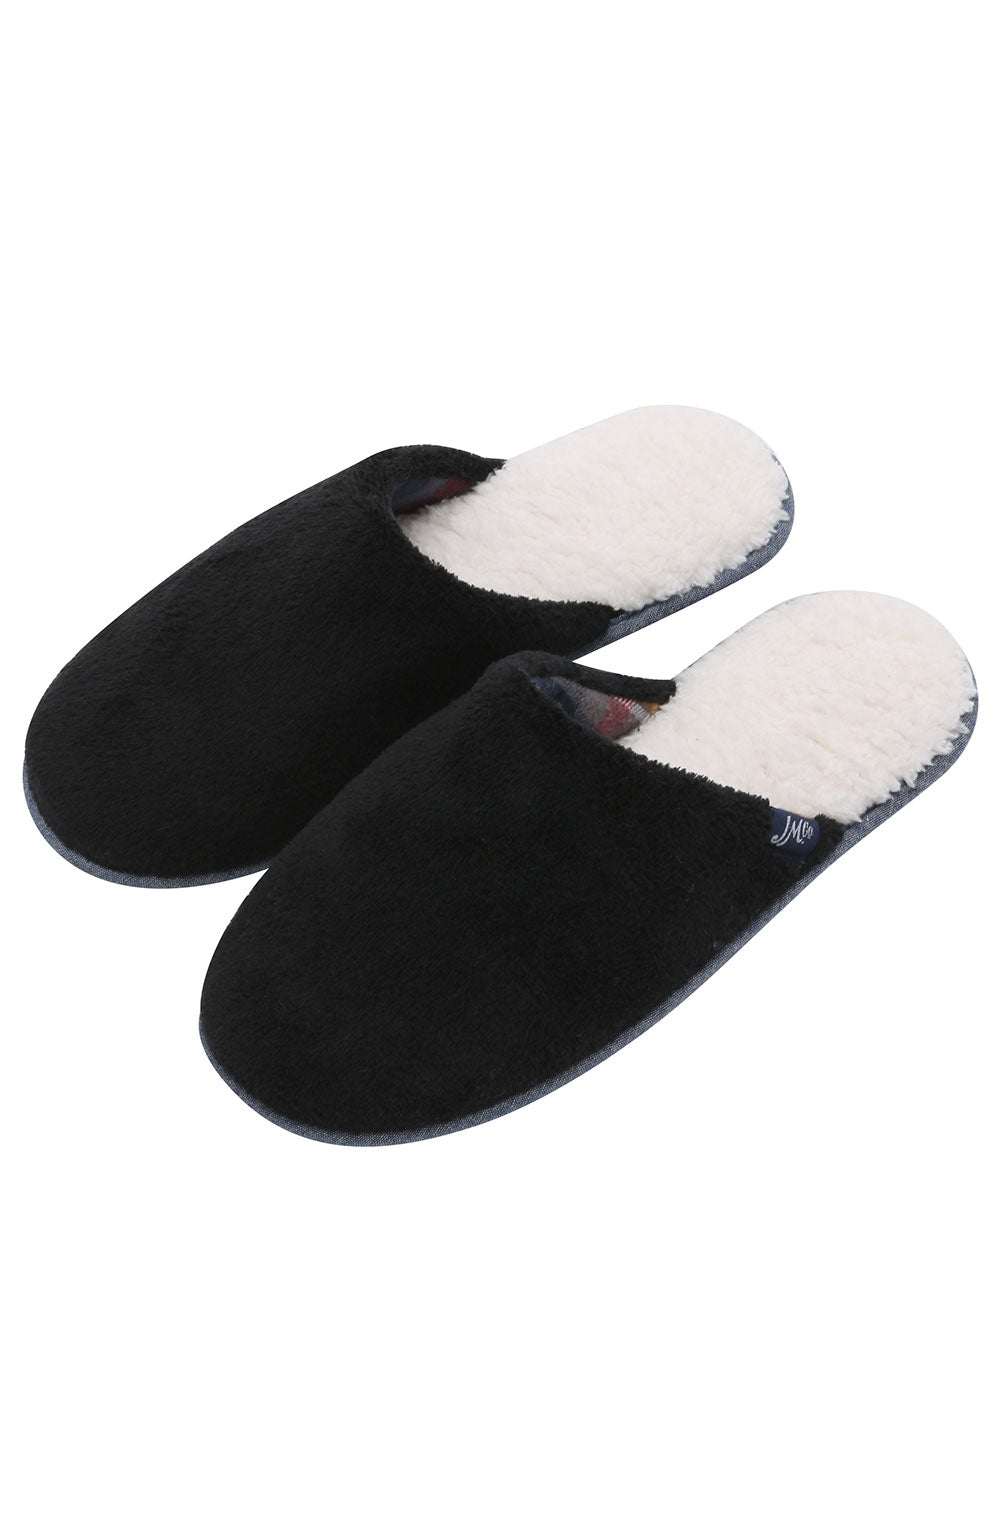 Black Sherpa Slipper with Memory Foam - jachs